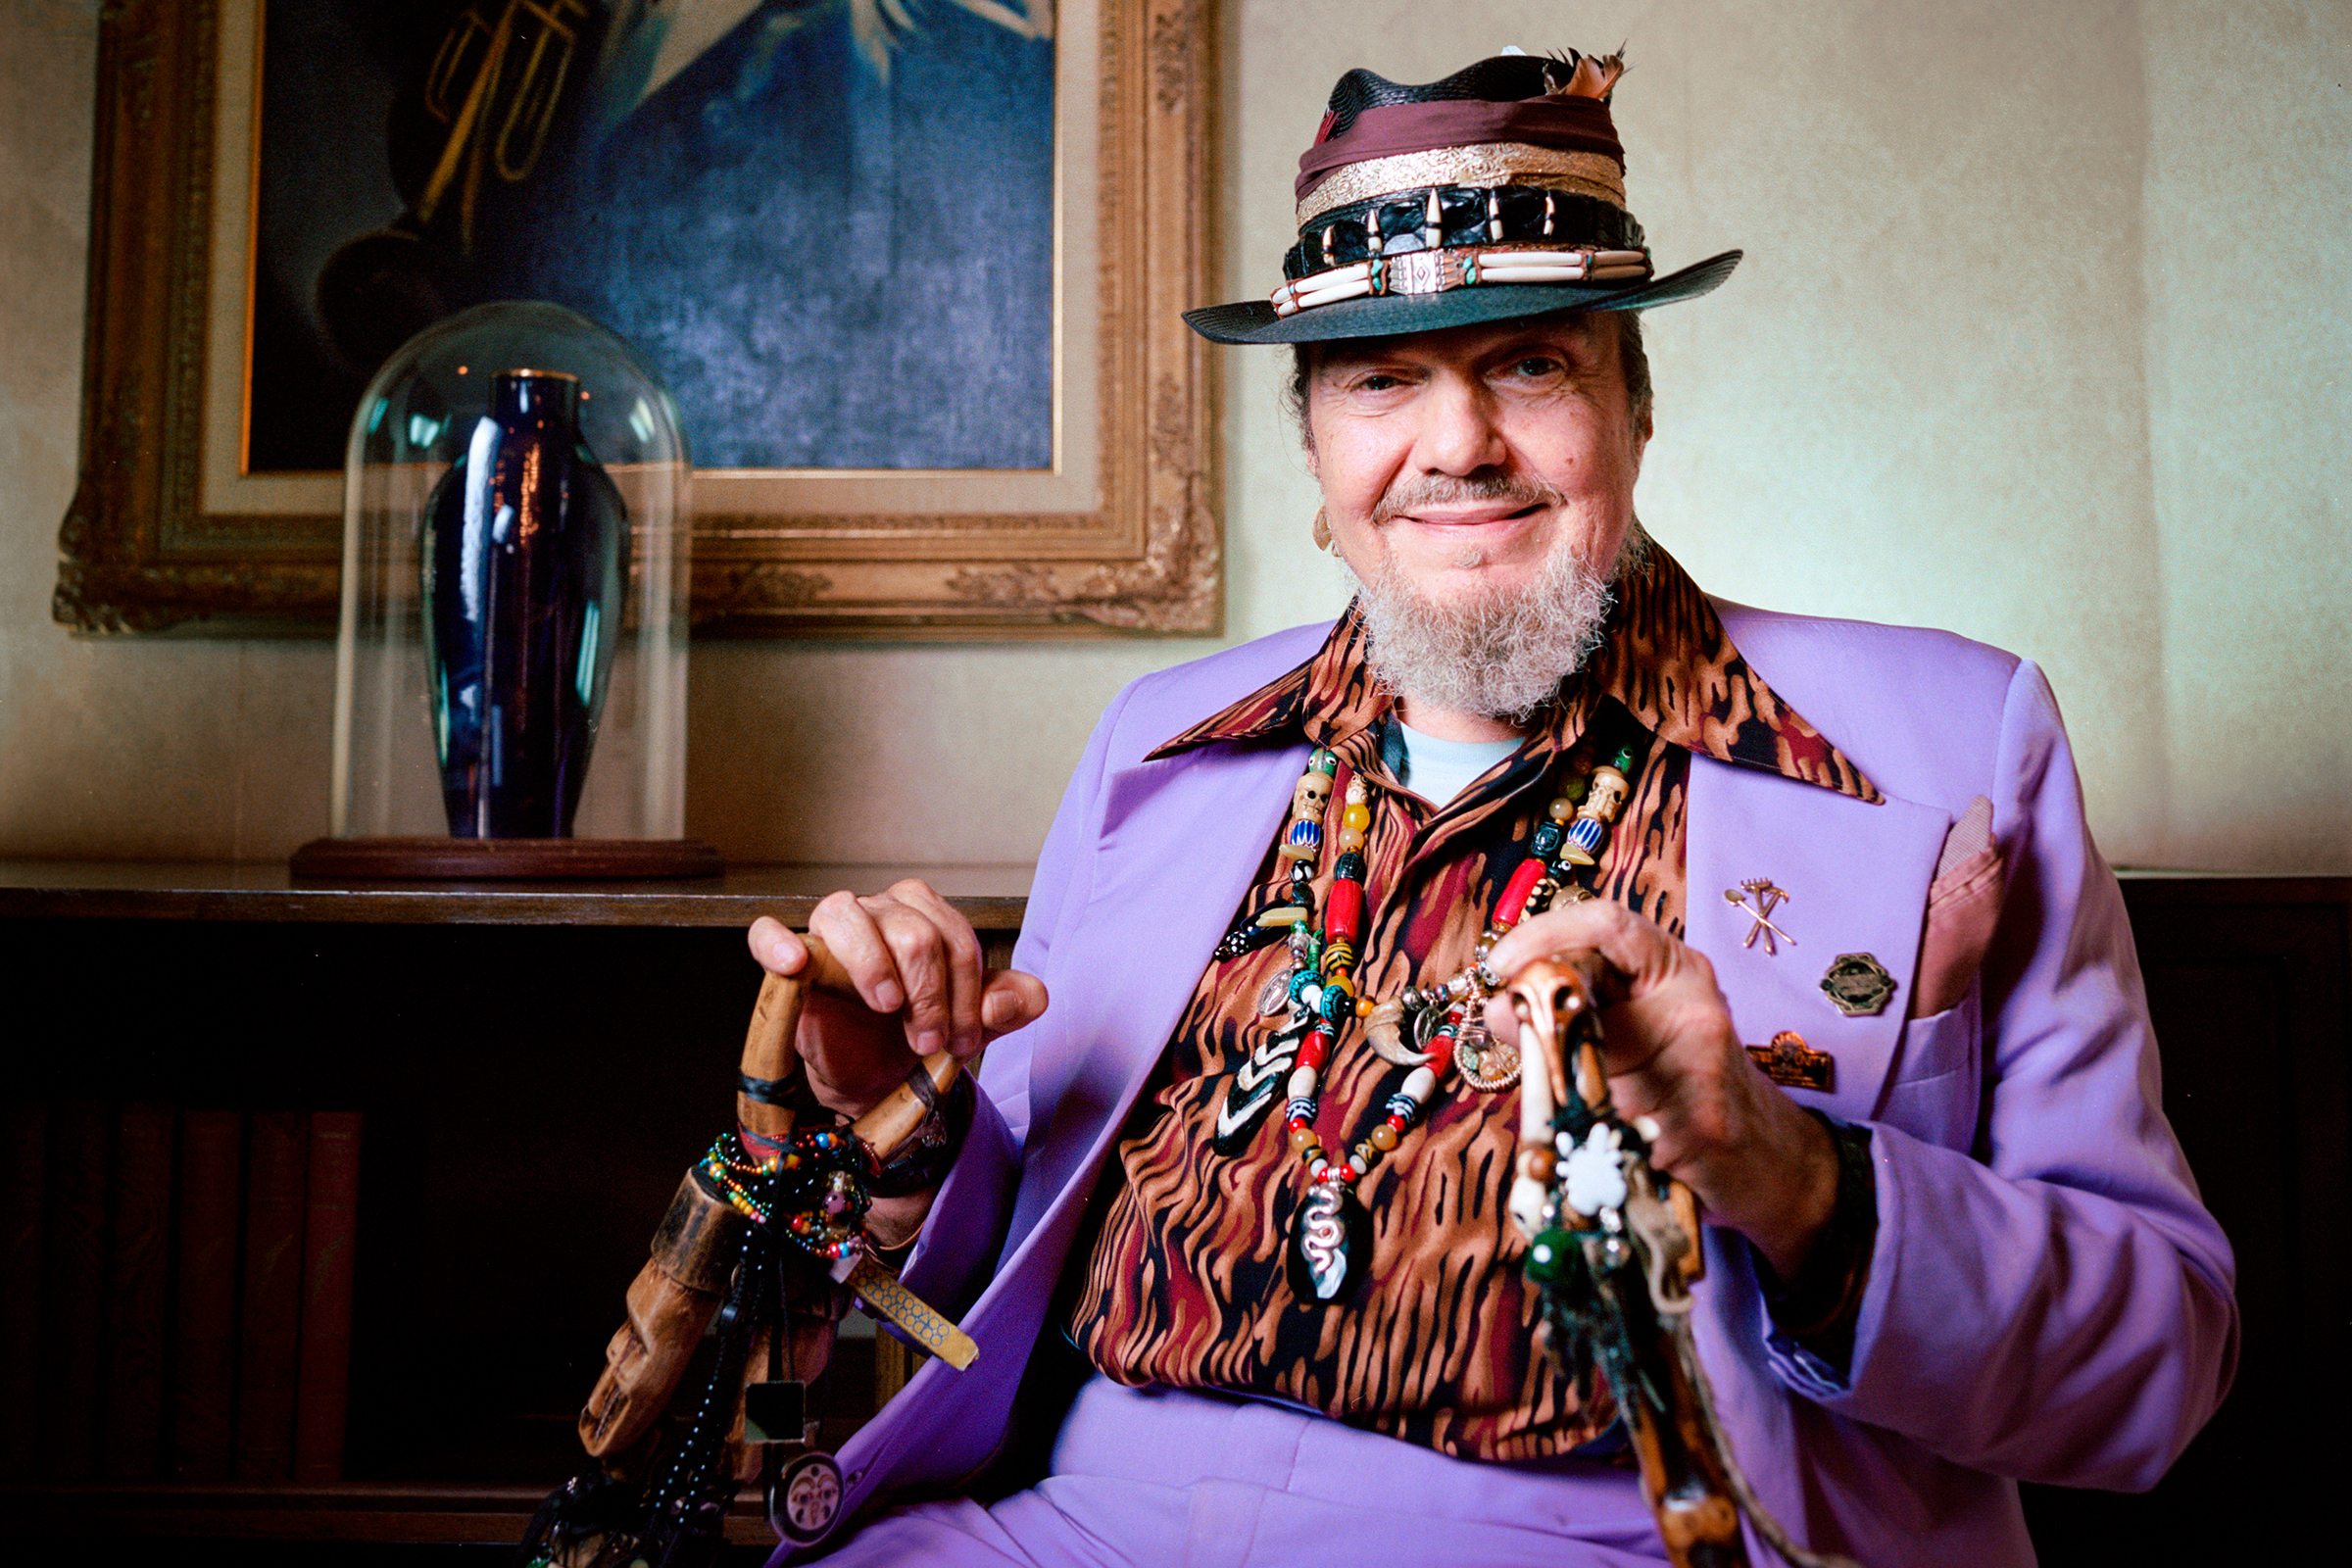 Dr. John: The Joy and Mystery of a New Orleans Saint